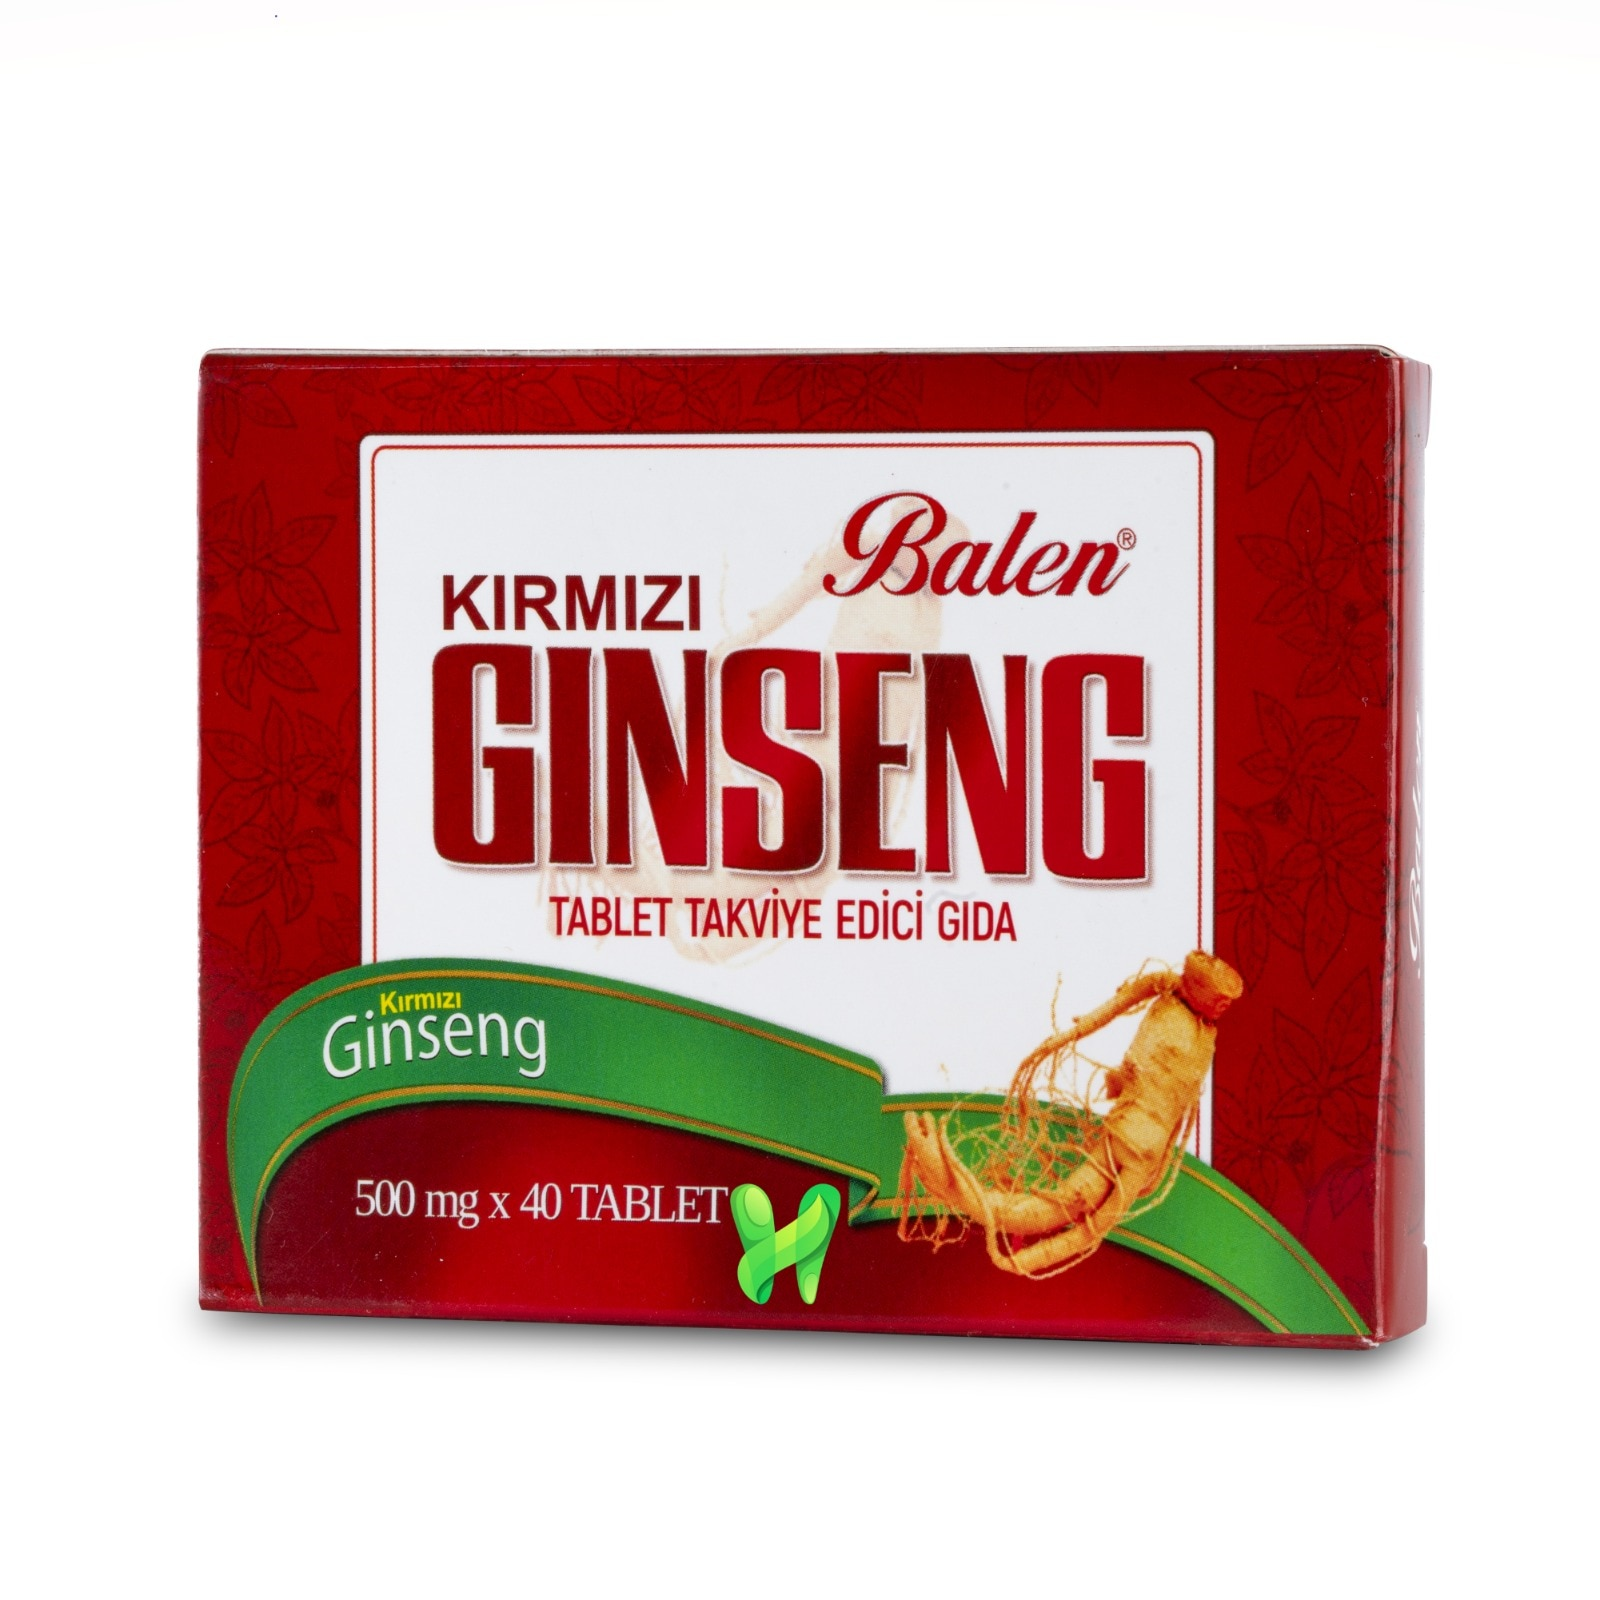 Korean Red Ginseng, for More Energy, and for better Sexual Ability, Thinking Skills, and Health, 40 Tablets, 500 mg